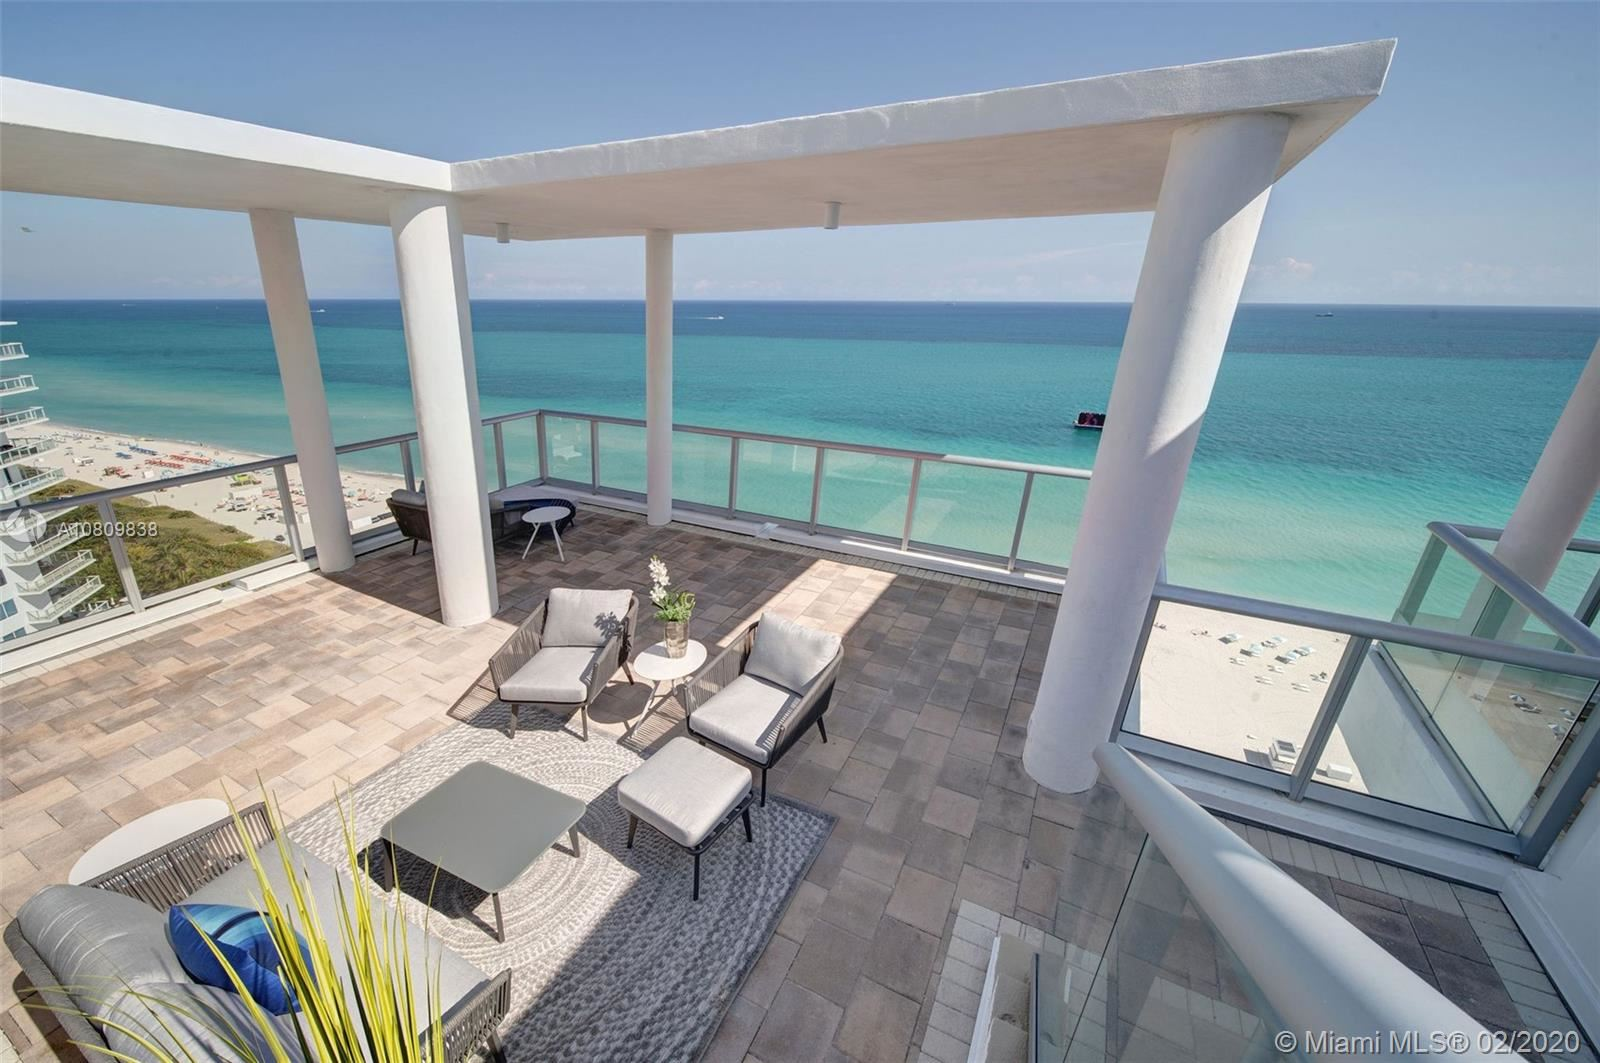 Photo 1 of Listing MLS a10809838 in 3737 Collins Ave #PH-4 Miami Beach FL 33140